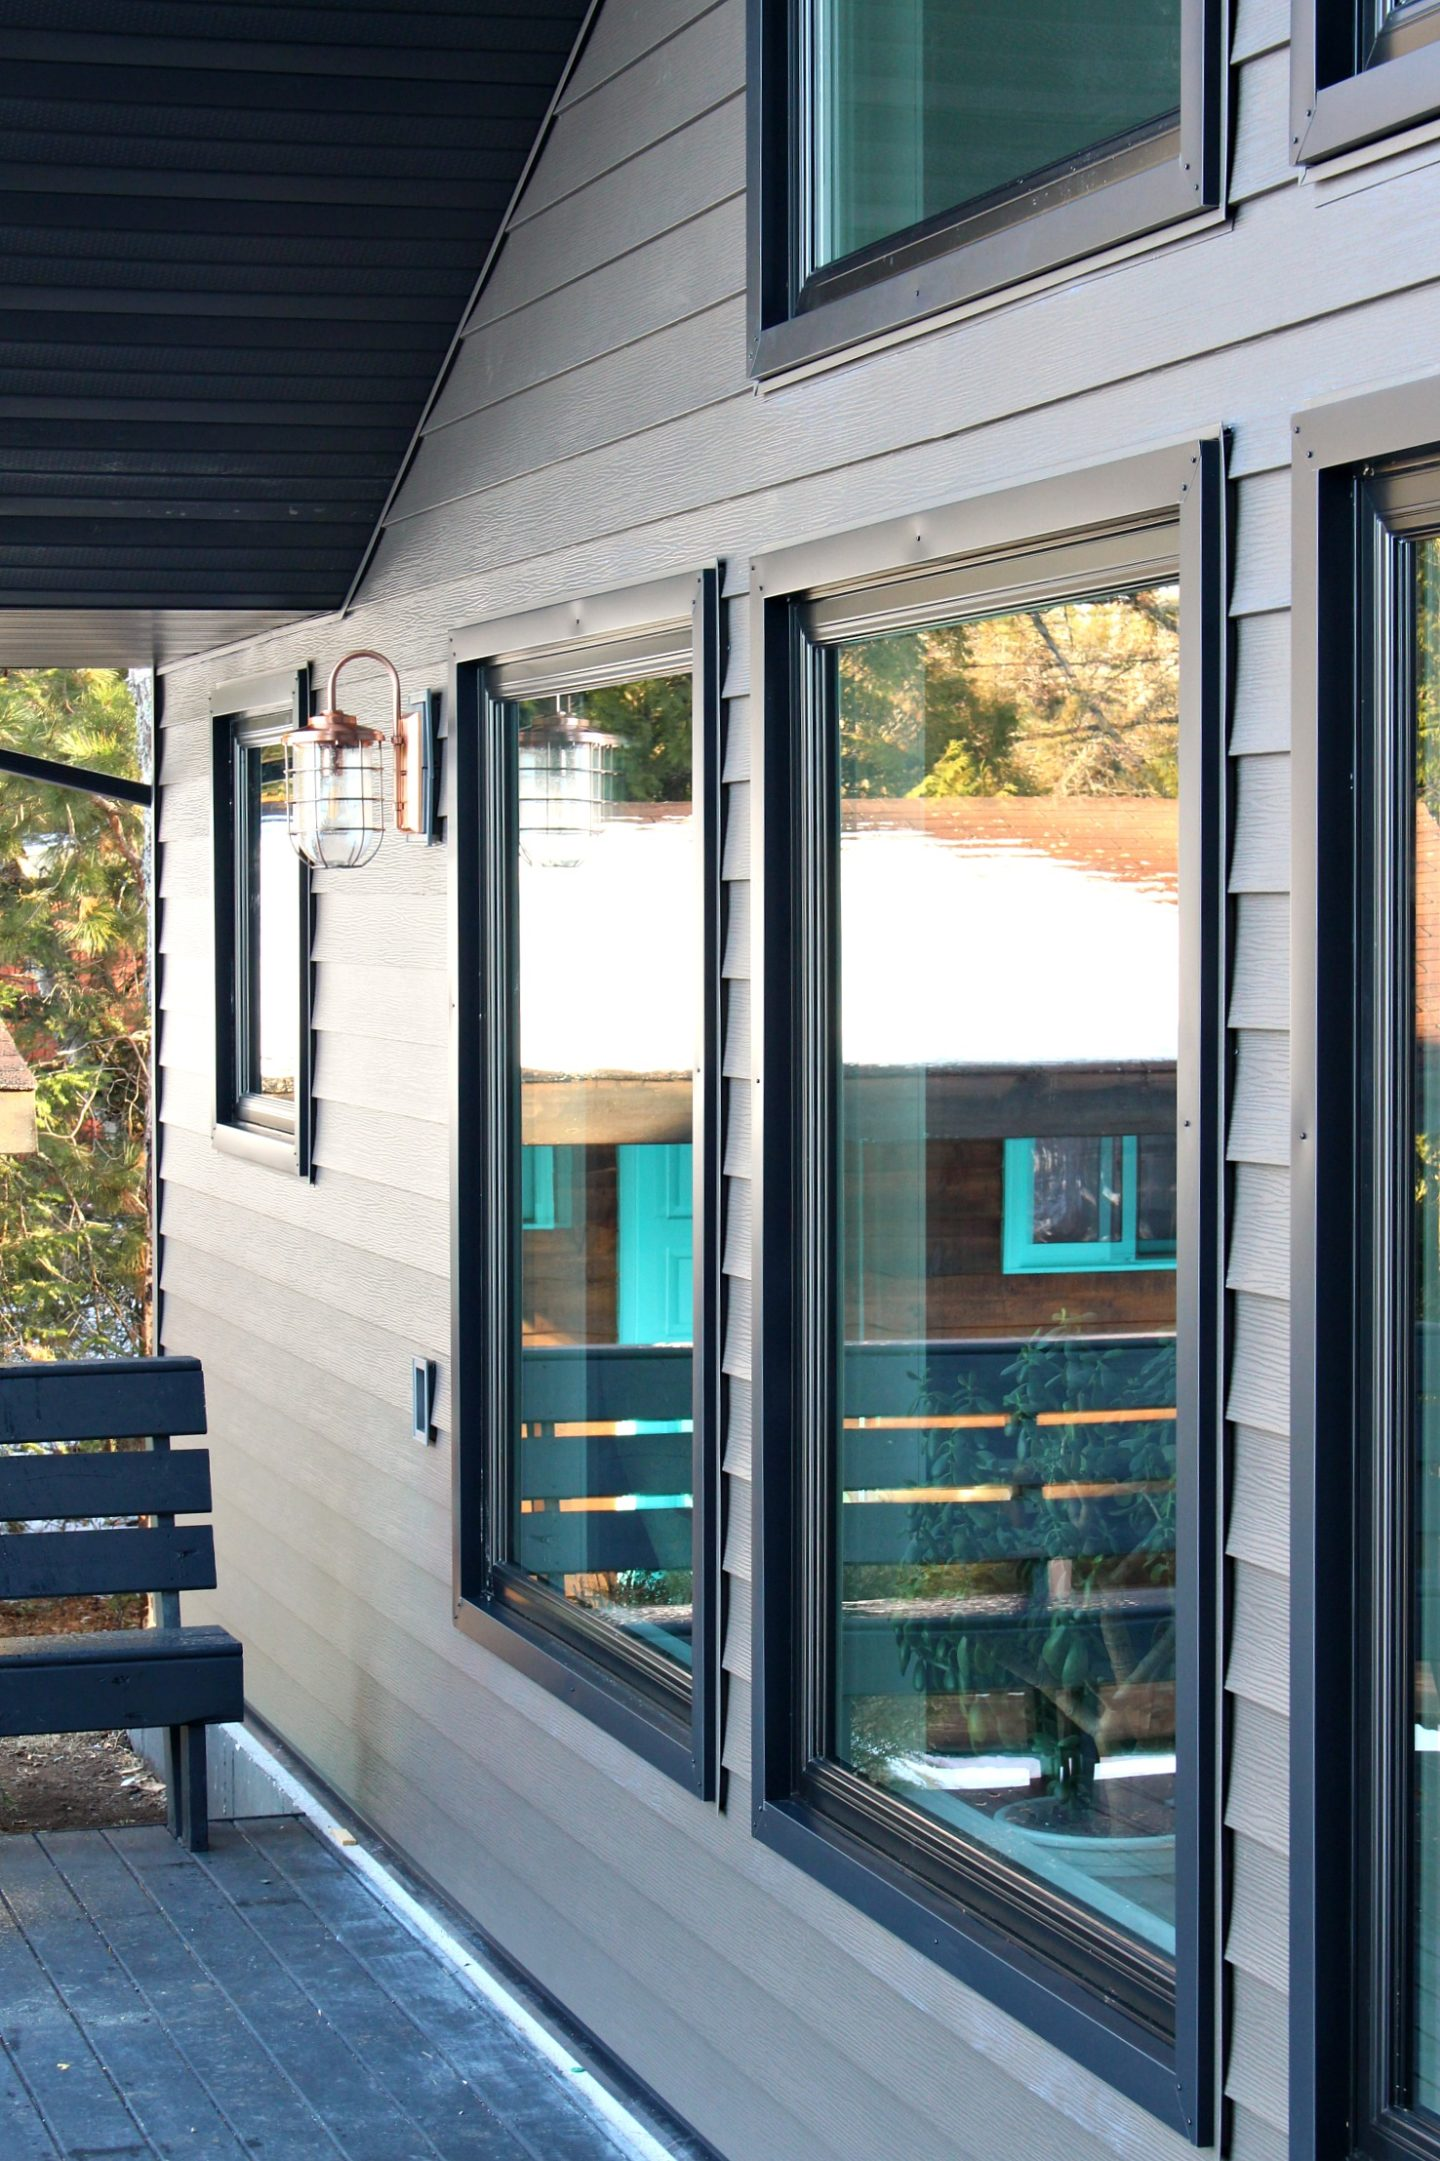 Getting Windows Replaced: What to Expect Getting Bigger Windows Installed